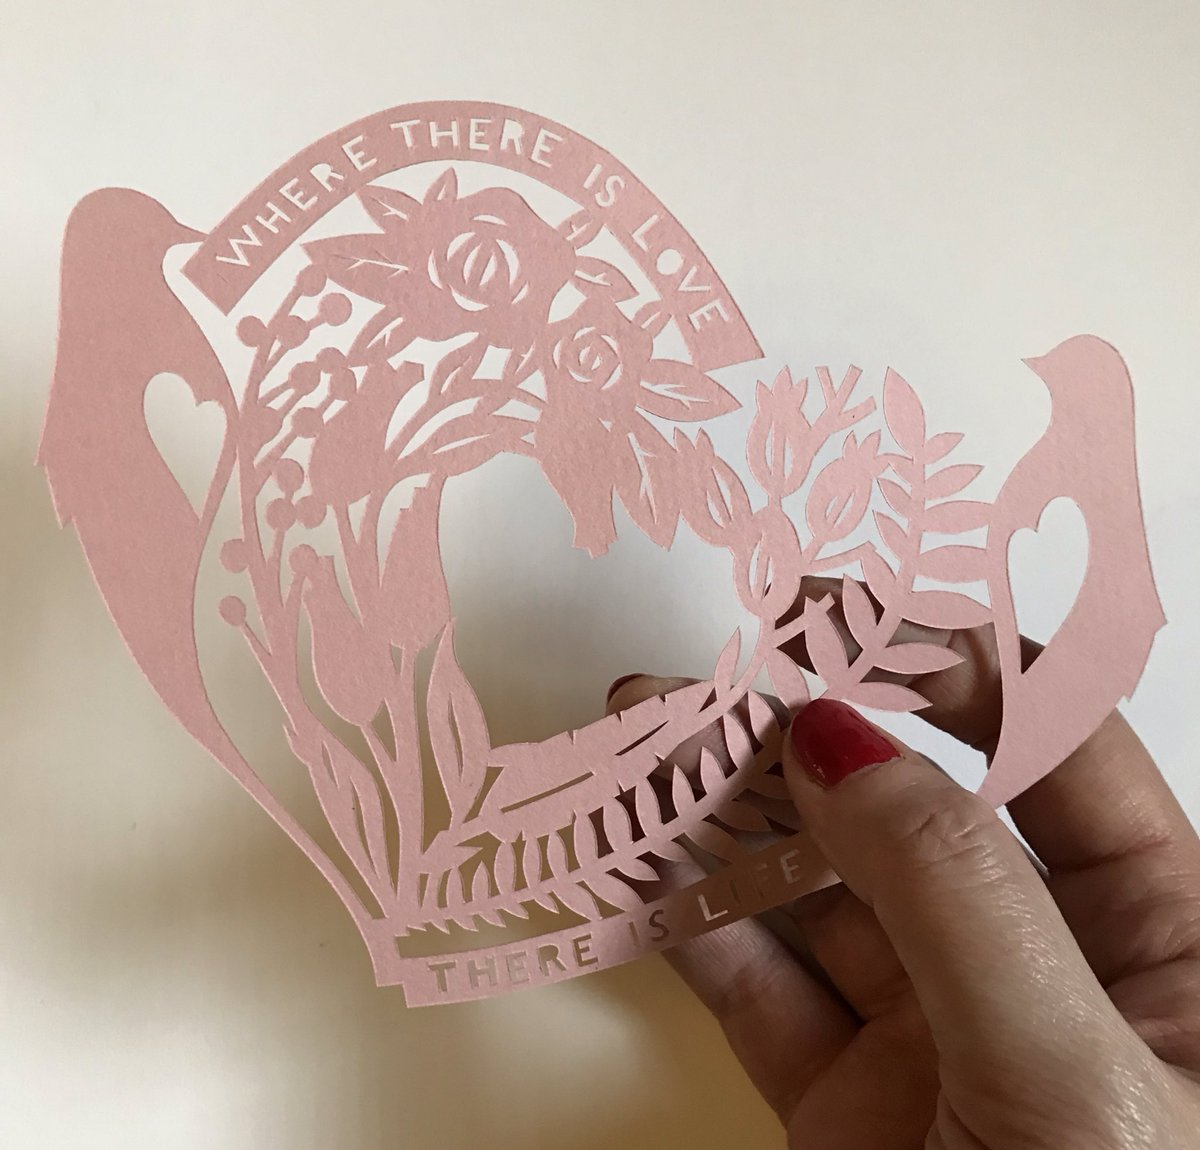 Evening #scottishcrafthour thought I'd pop on with a Valentine's Day inspired paper cut ♥️- Happy Valentines Day #paperartist #paper #papercraft #paperart #ValentineDay #heart #lovebirds